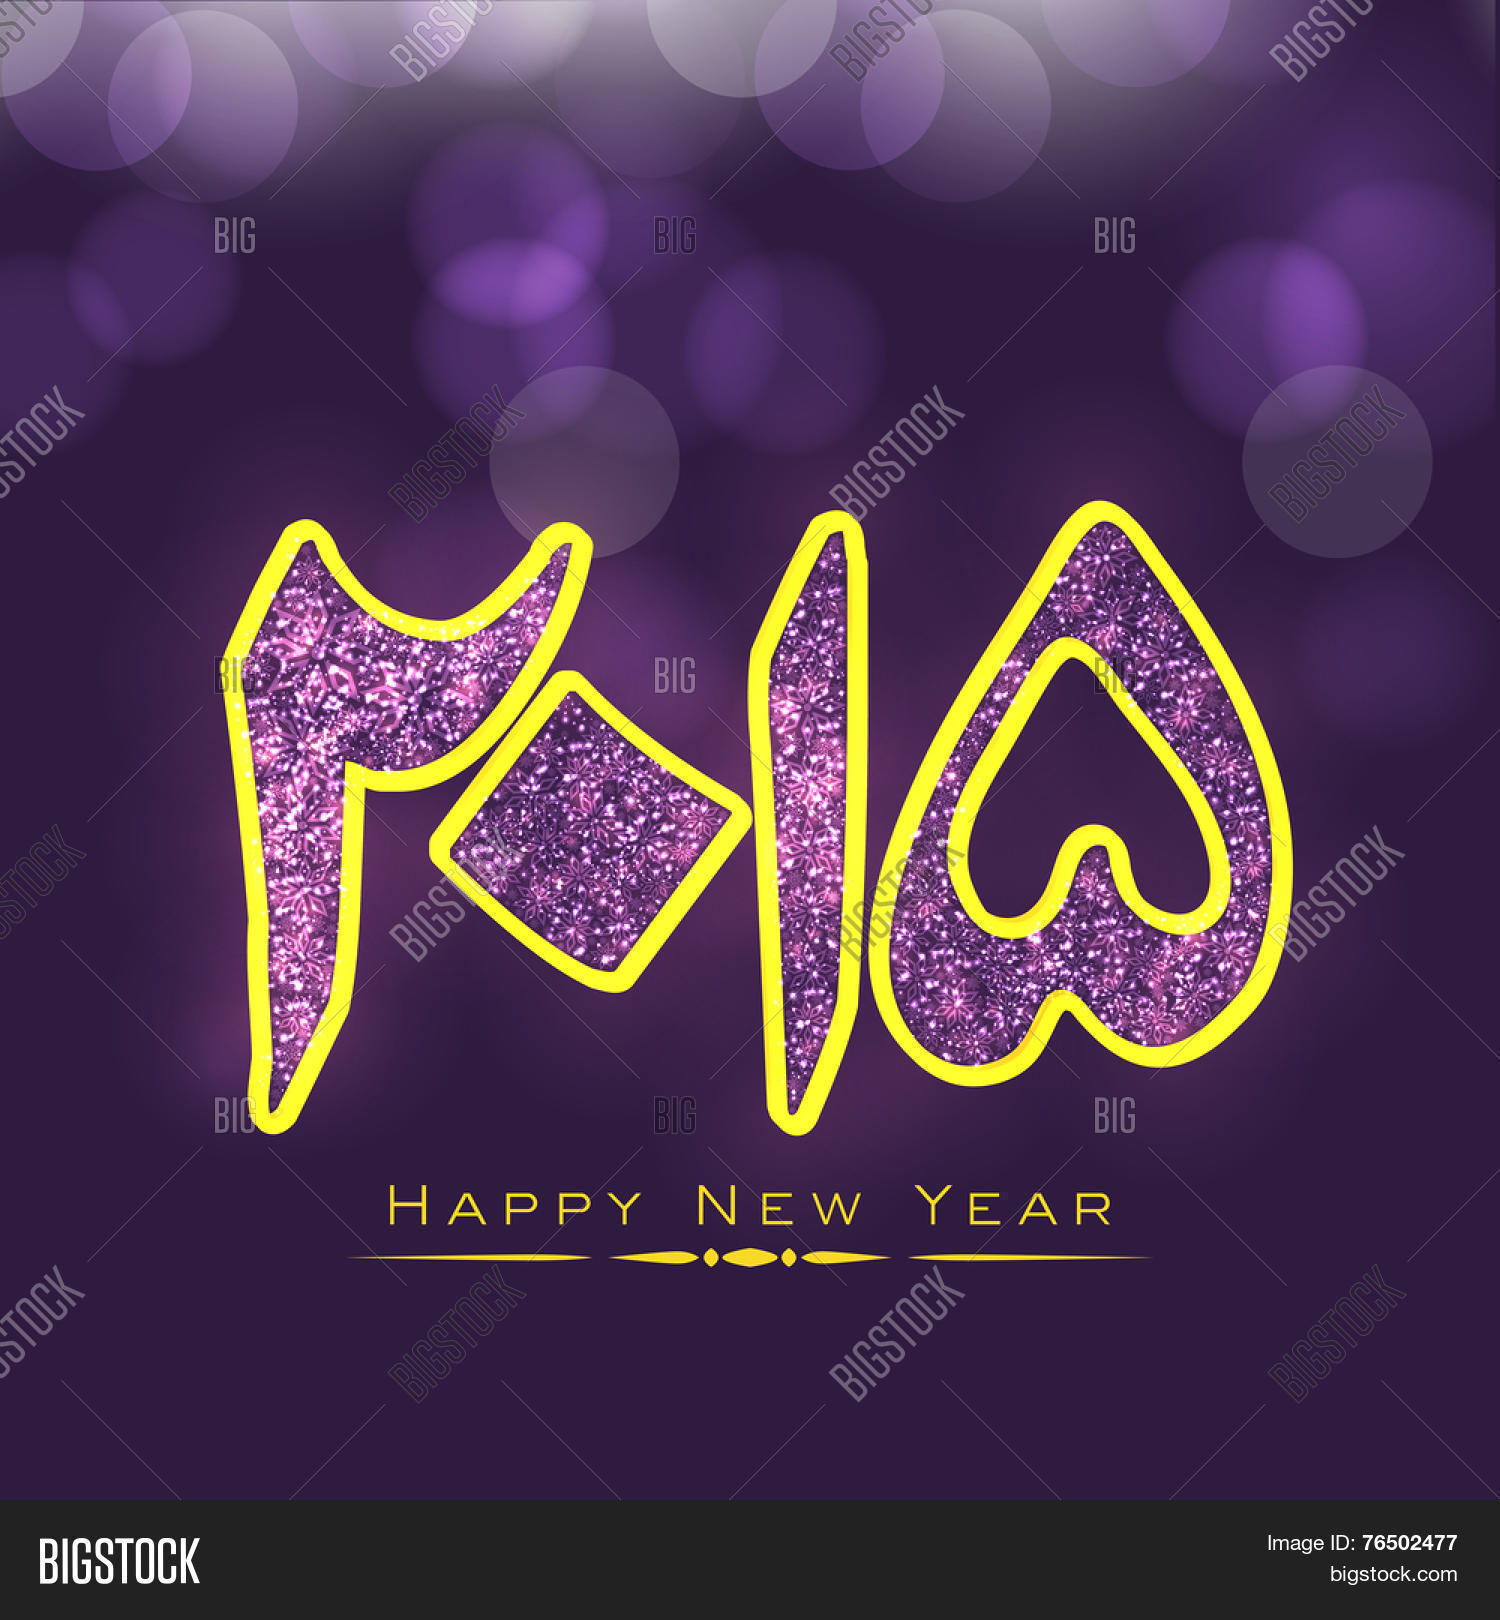 urdu islamic calligraphy of golden text happy new year 2015 on shiny purple background